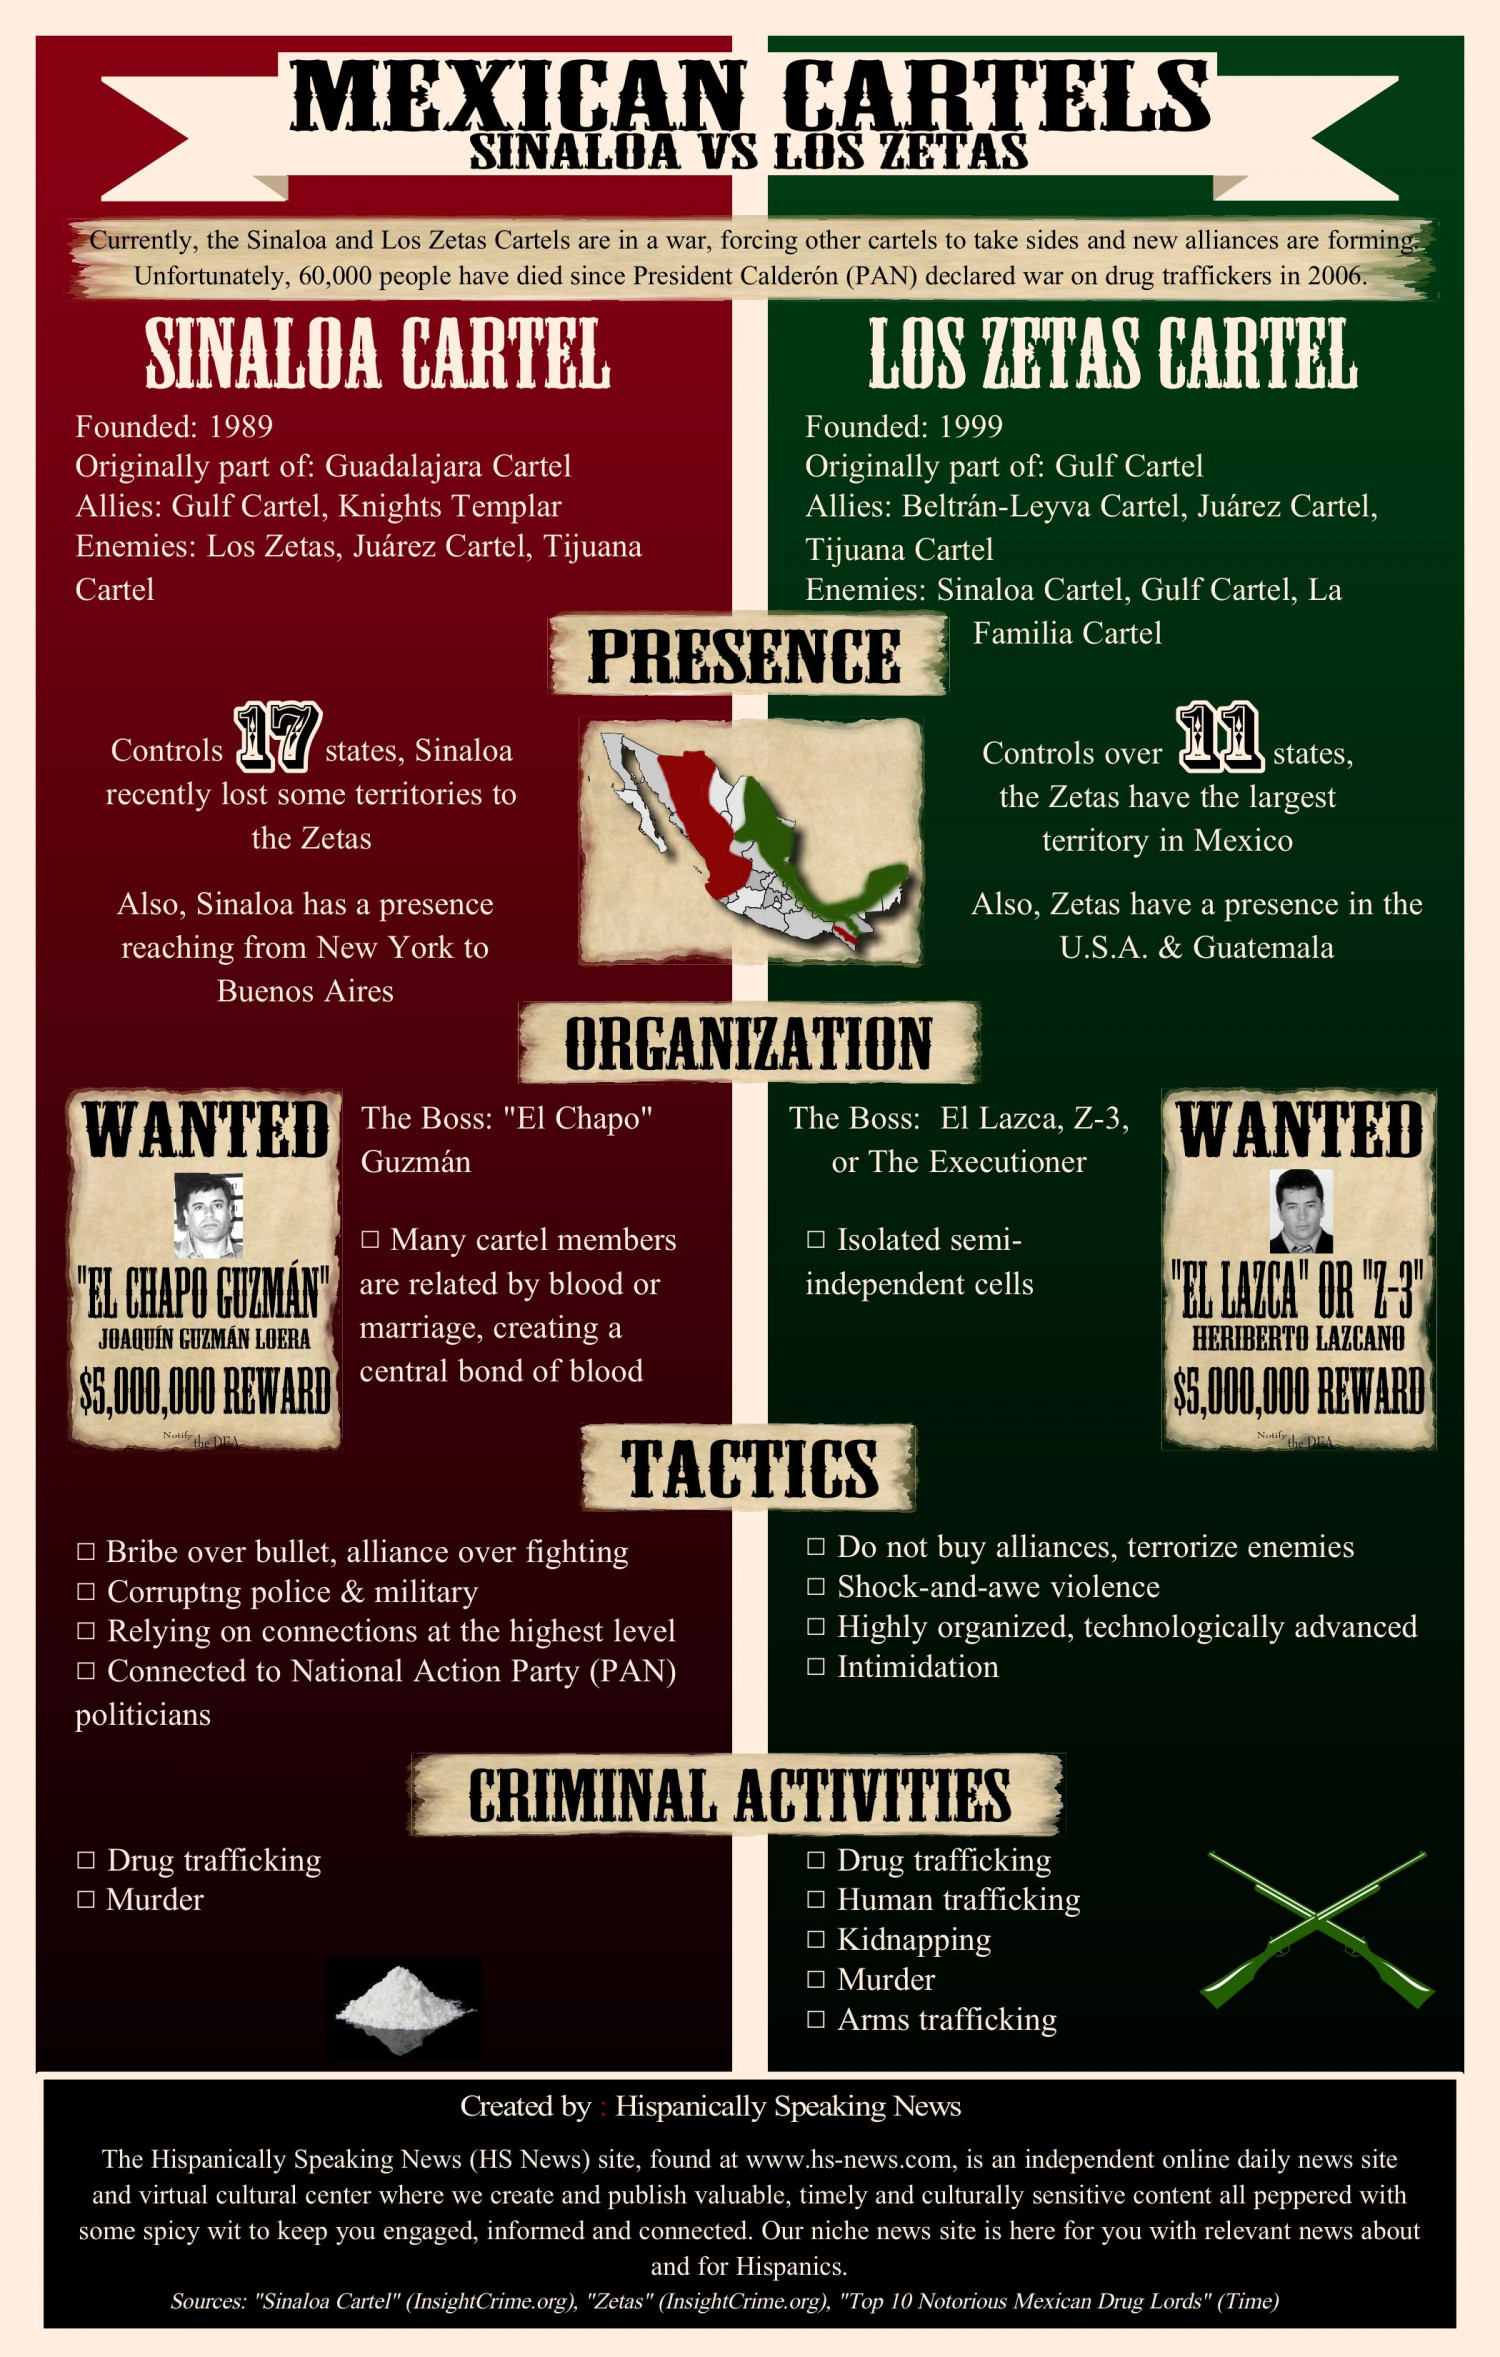 the zetas vs sinaloa cartel Infographic: mexican cartels (sinaloa vs los zetas) the sinaloa and los zetas cartels are tj is allied with juarez cartel los zetas n a few more but.